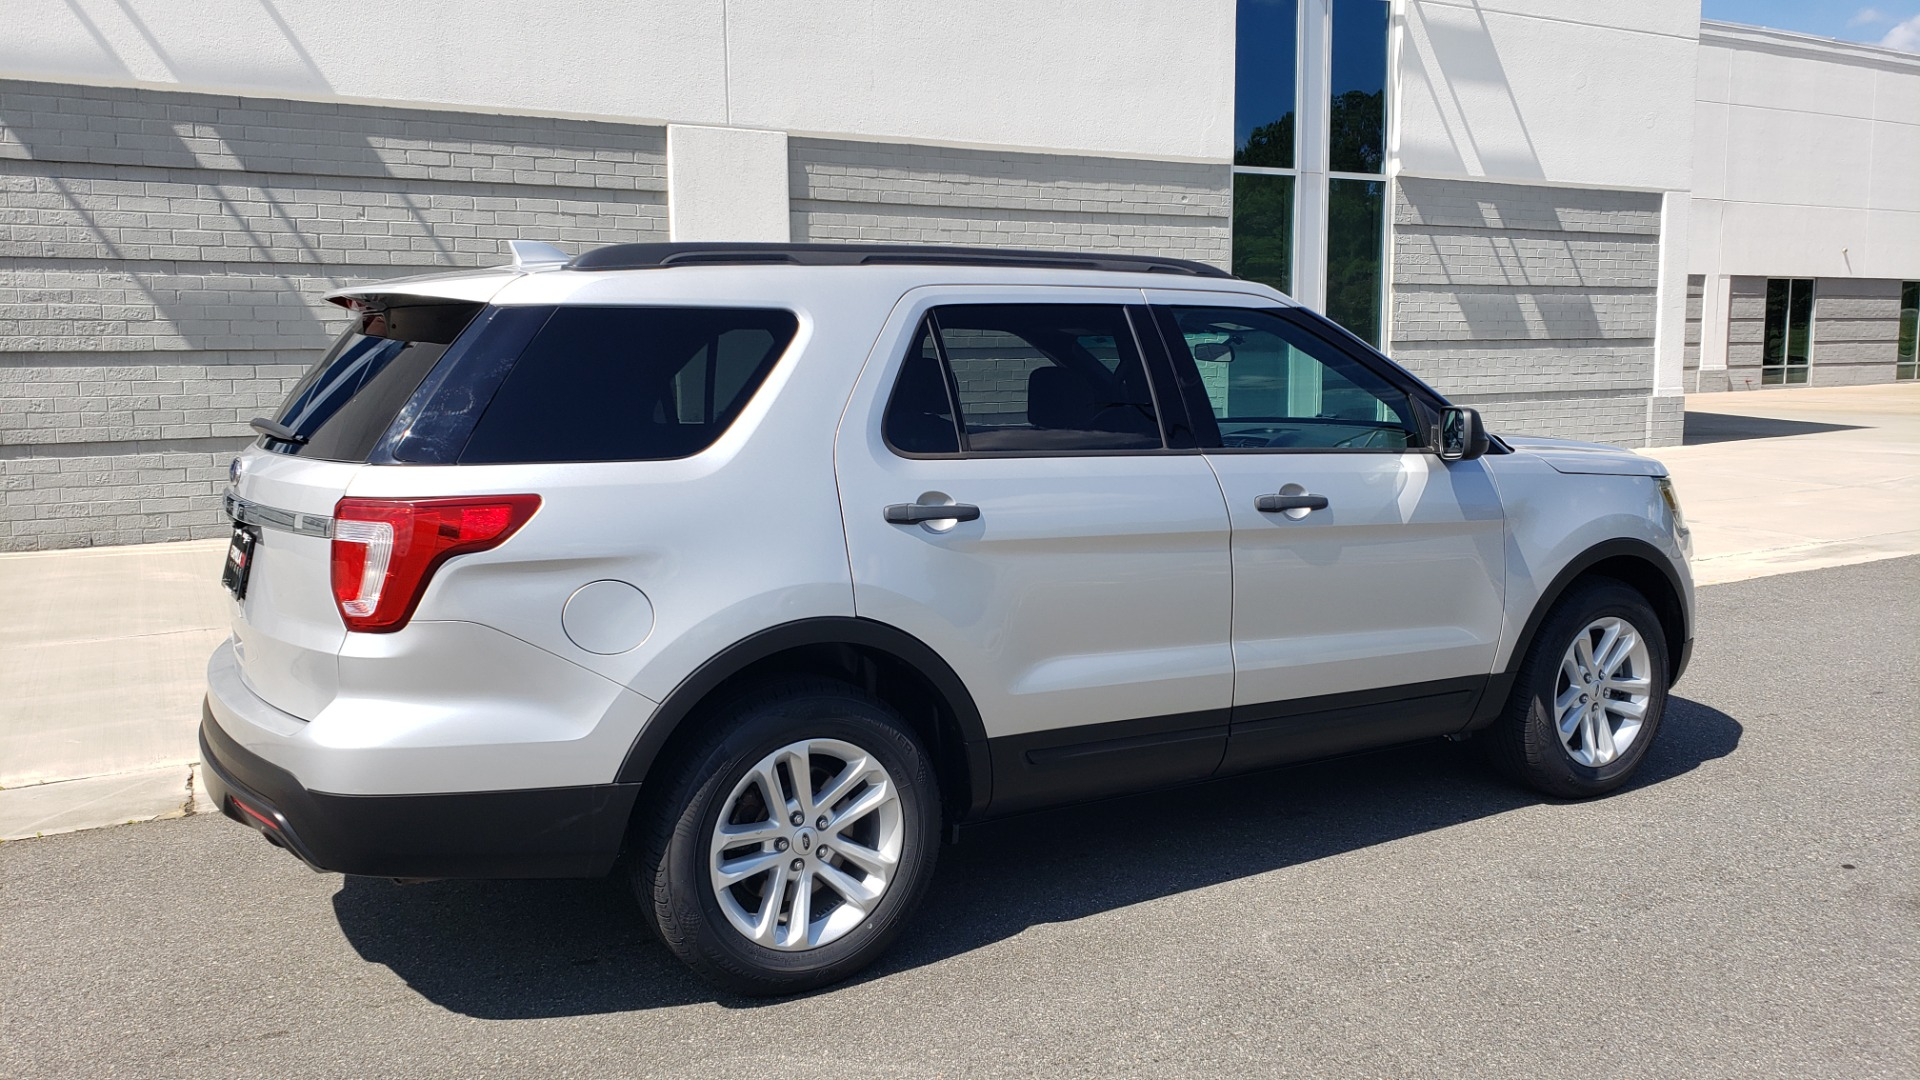 Used 2017 Ford EXPLORER 3.5L V6 / 6-SPD AUTO / BLIND SPOT MONITOR / 3-ROW / SYNC / REARVIEW for sale $22,995 at Formula Imports in Charlotte NC 28227 8